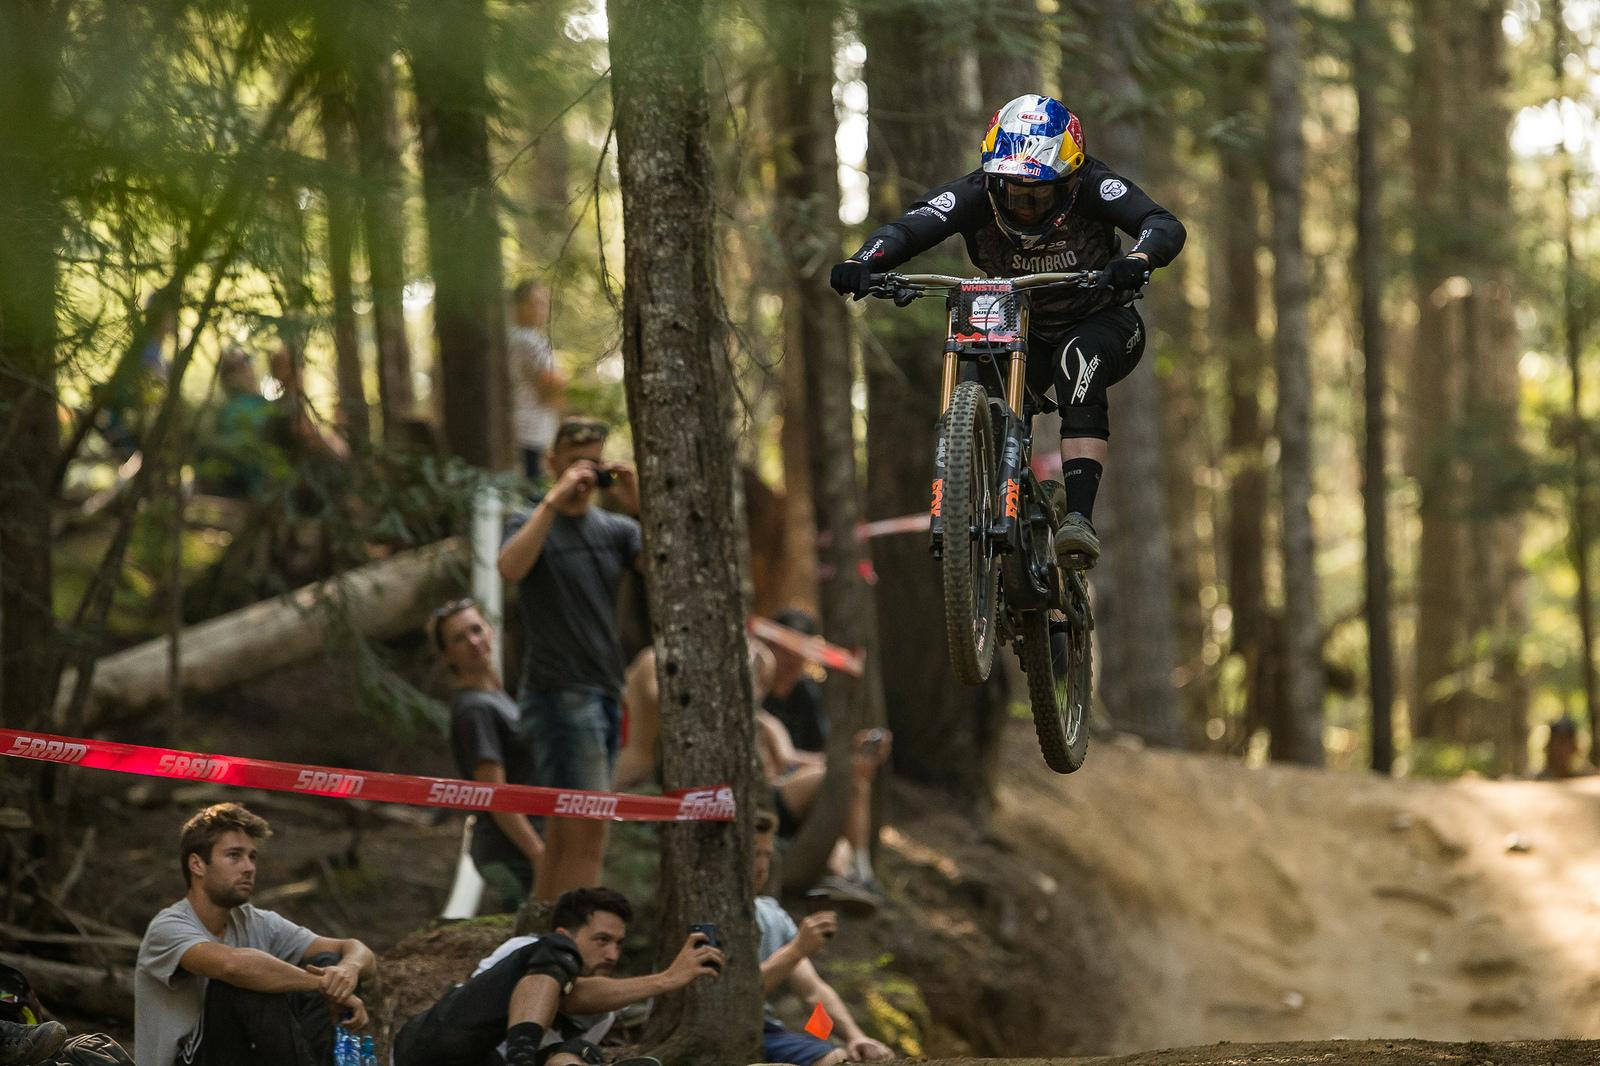 Kitner winning at crankworx